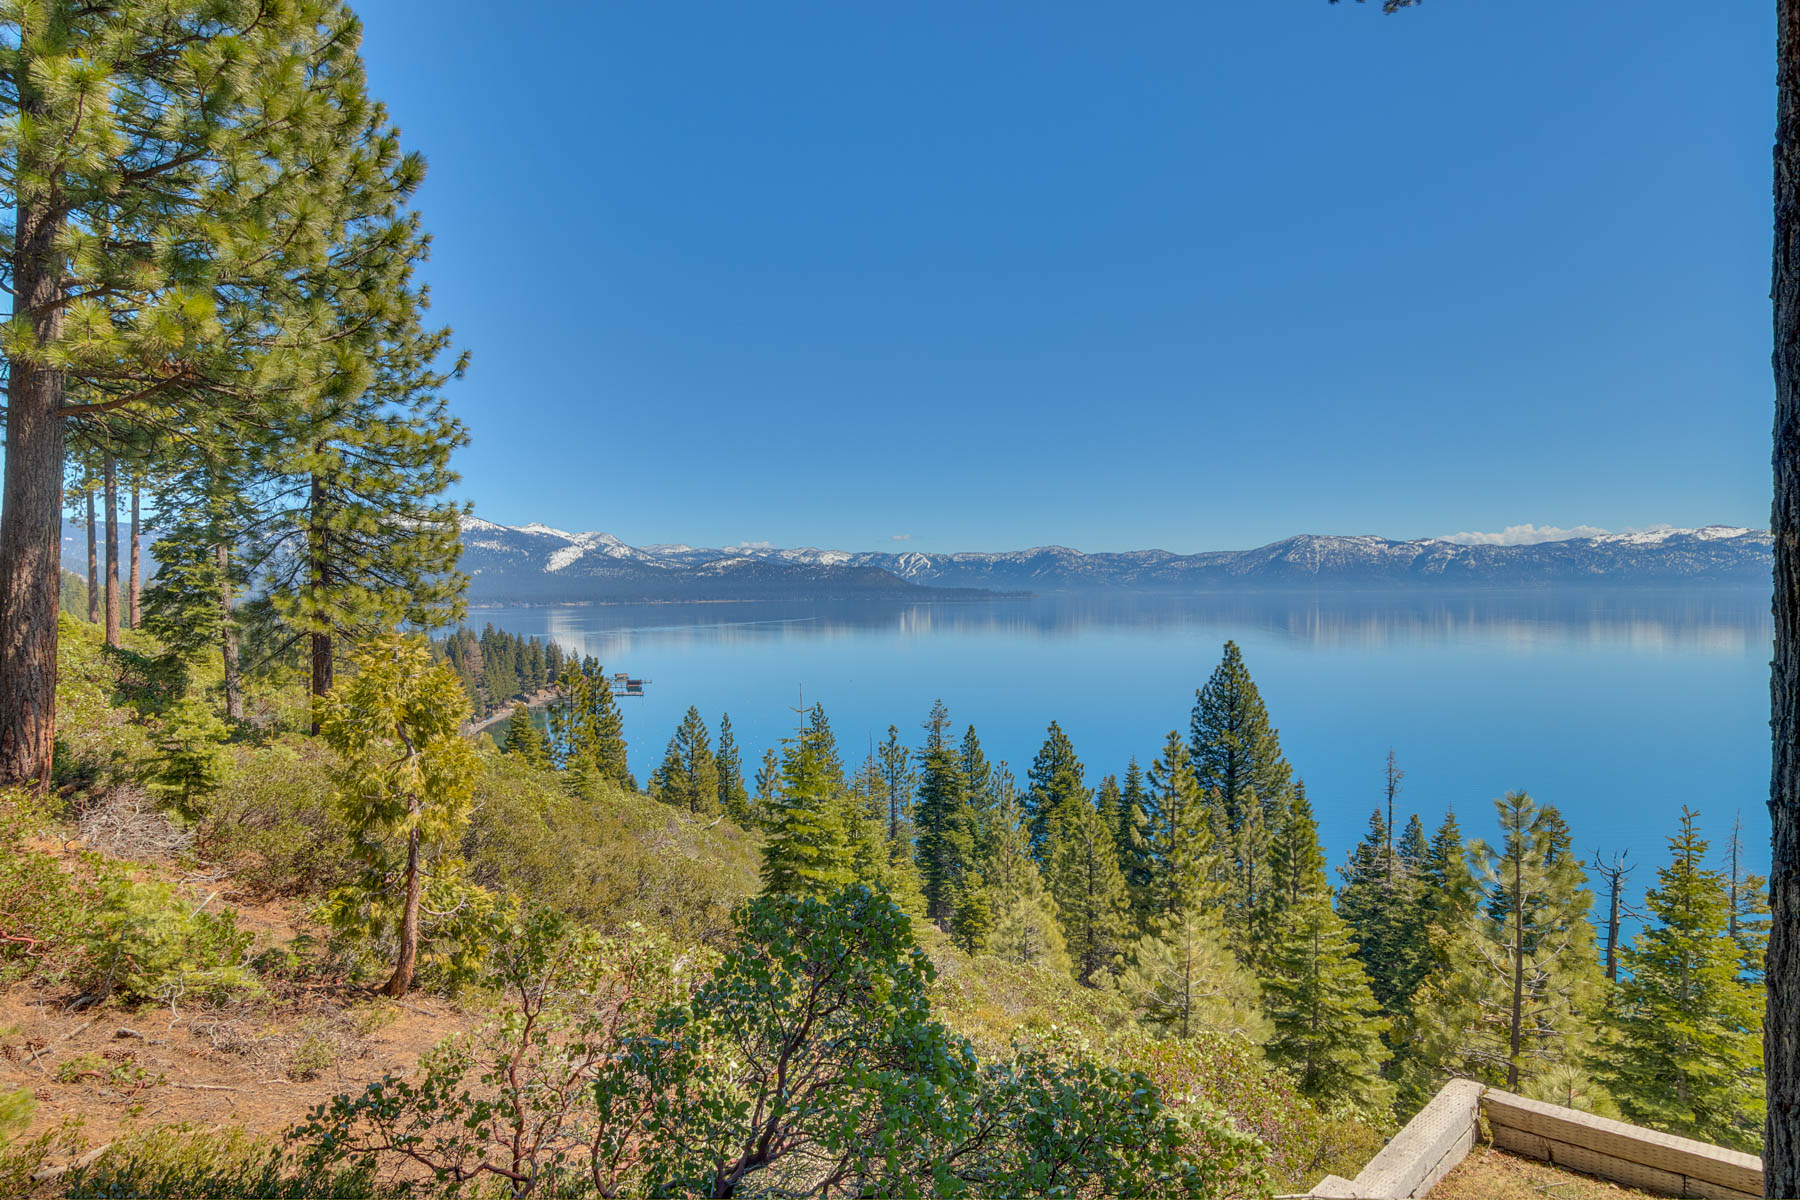 Additional photo for property listing at 488 Old County Road, Carnelian Bay, CA 96140 488 Old County Road Carnelian Bay, California 96140 United States